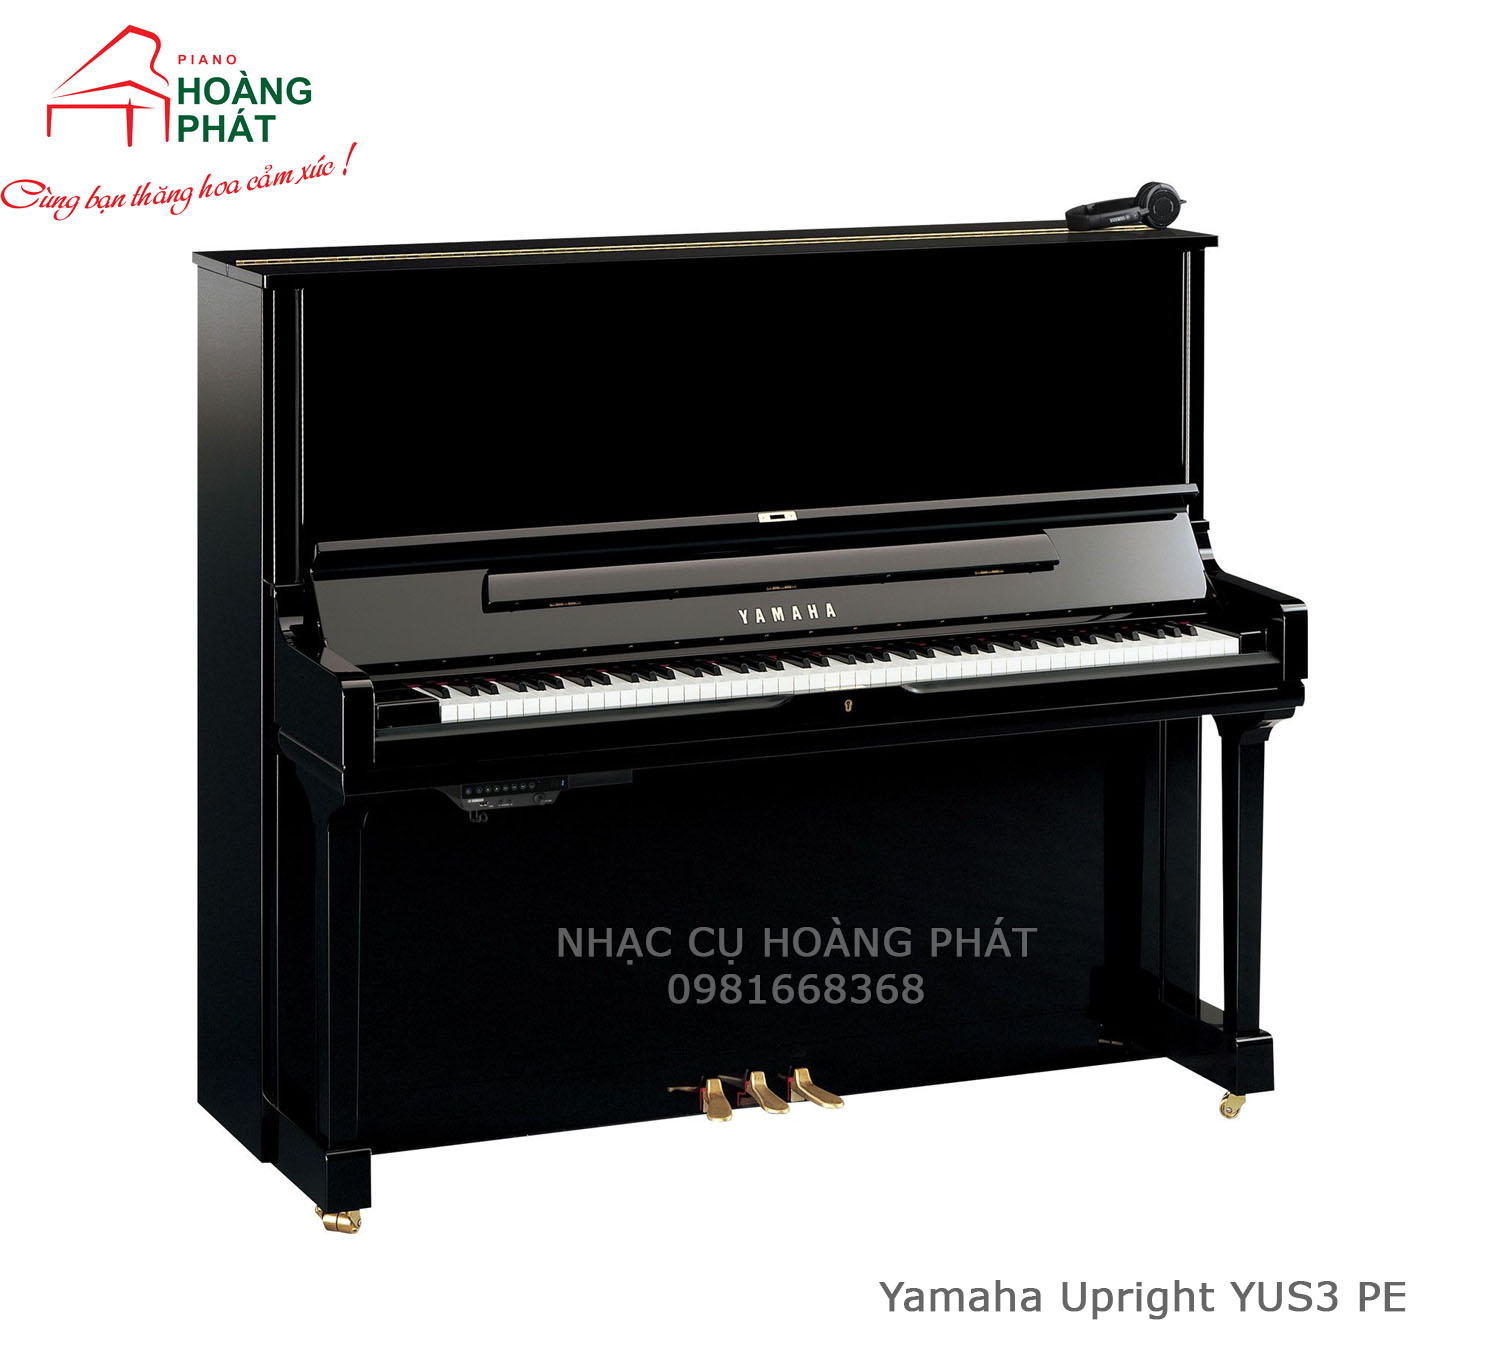 Piano Yamaha Upright YUS3 PE